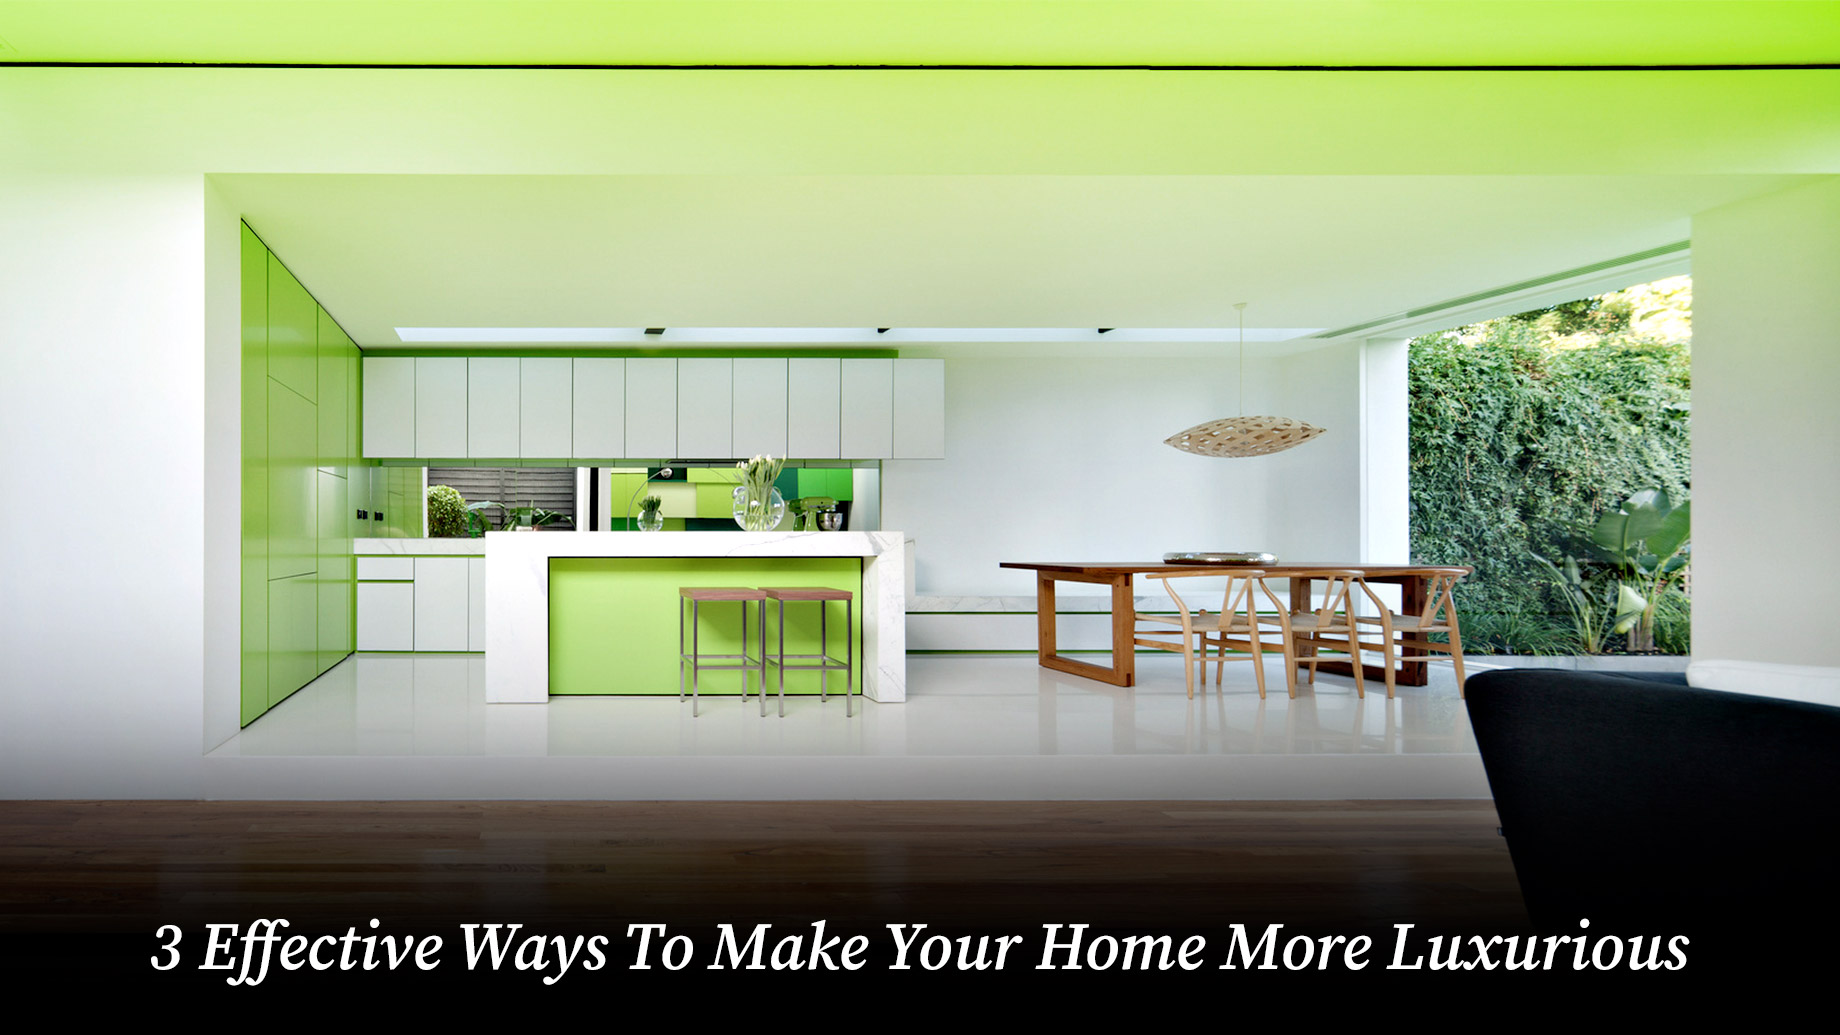 3 Effective Ways To Make Your Home More Luxurious